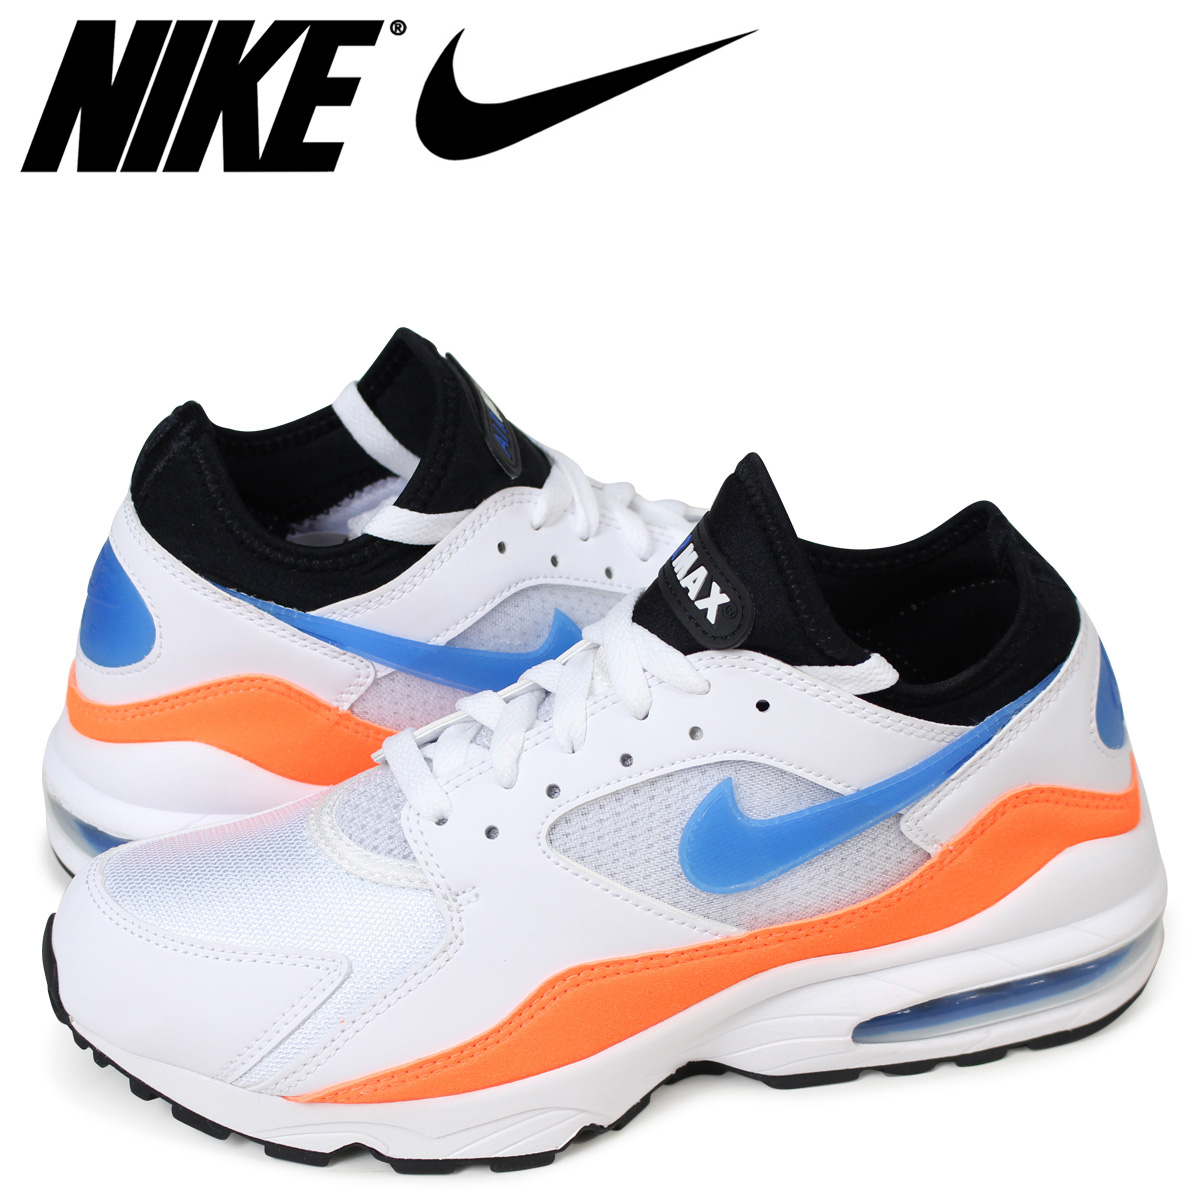 exquisite style look out for dirt cheap NIKE AIR MAX 93 Kie Ney AMAX 93 sneakers men 306,551-104 white